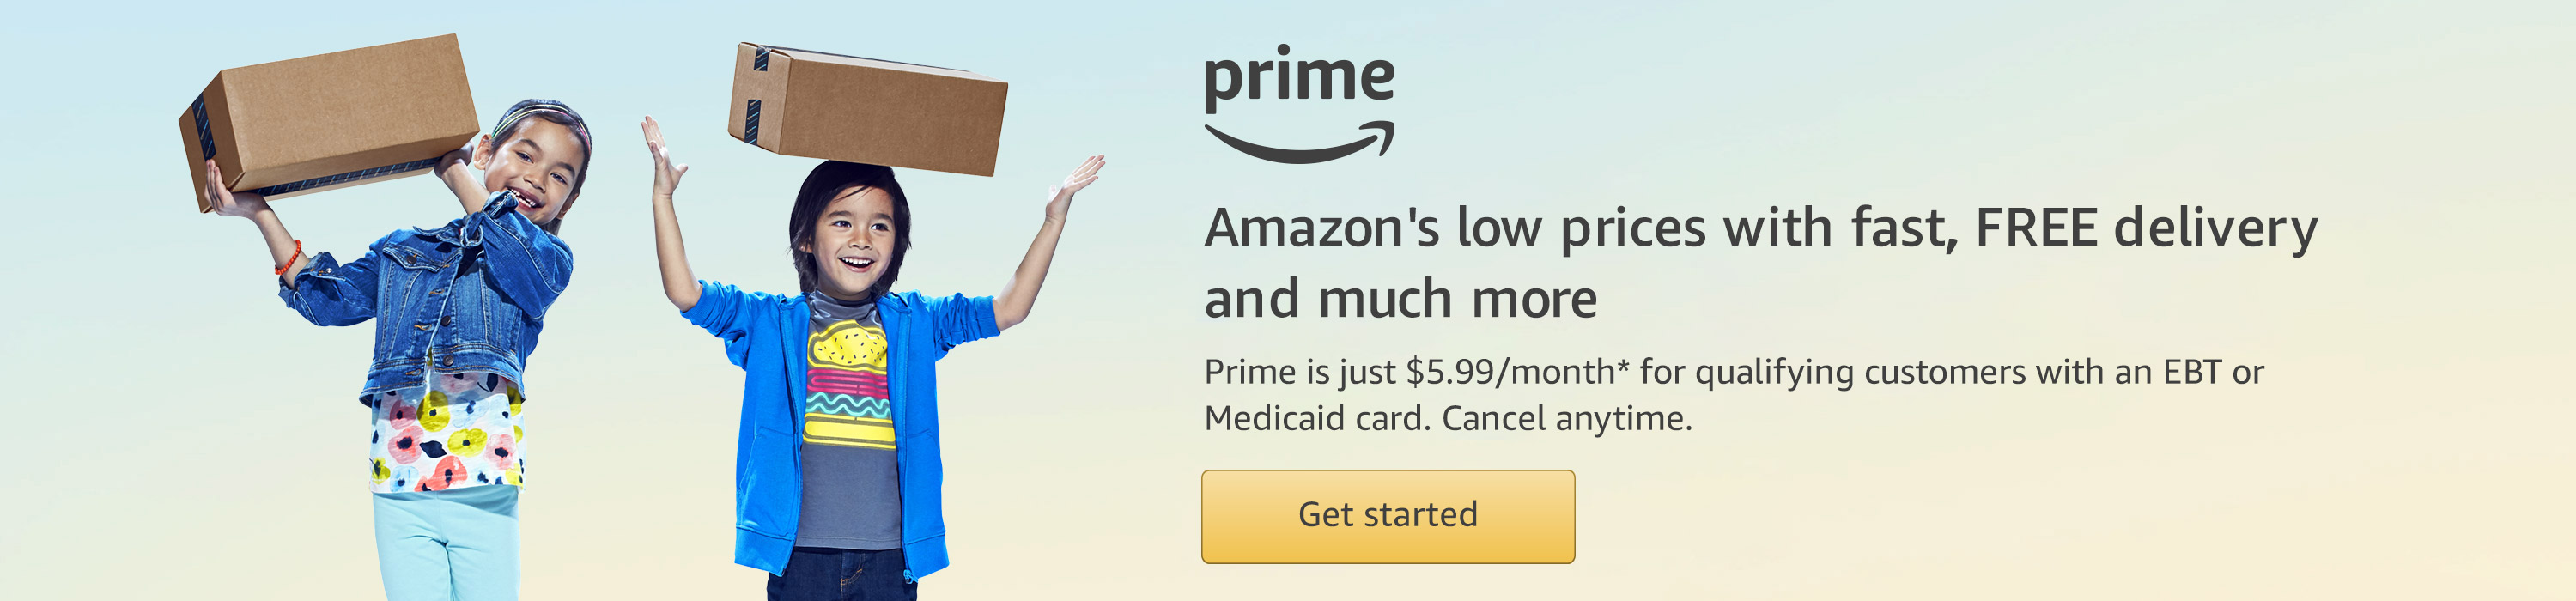 Amazon Prime is just $5.99 per month for qualifying customers with an EBT or Medicaid card. Cancel anytime.